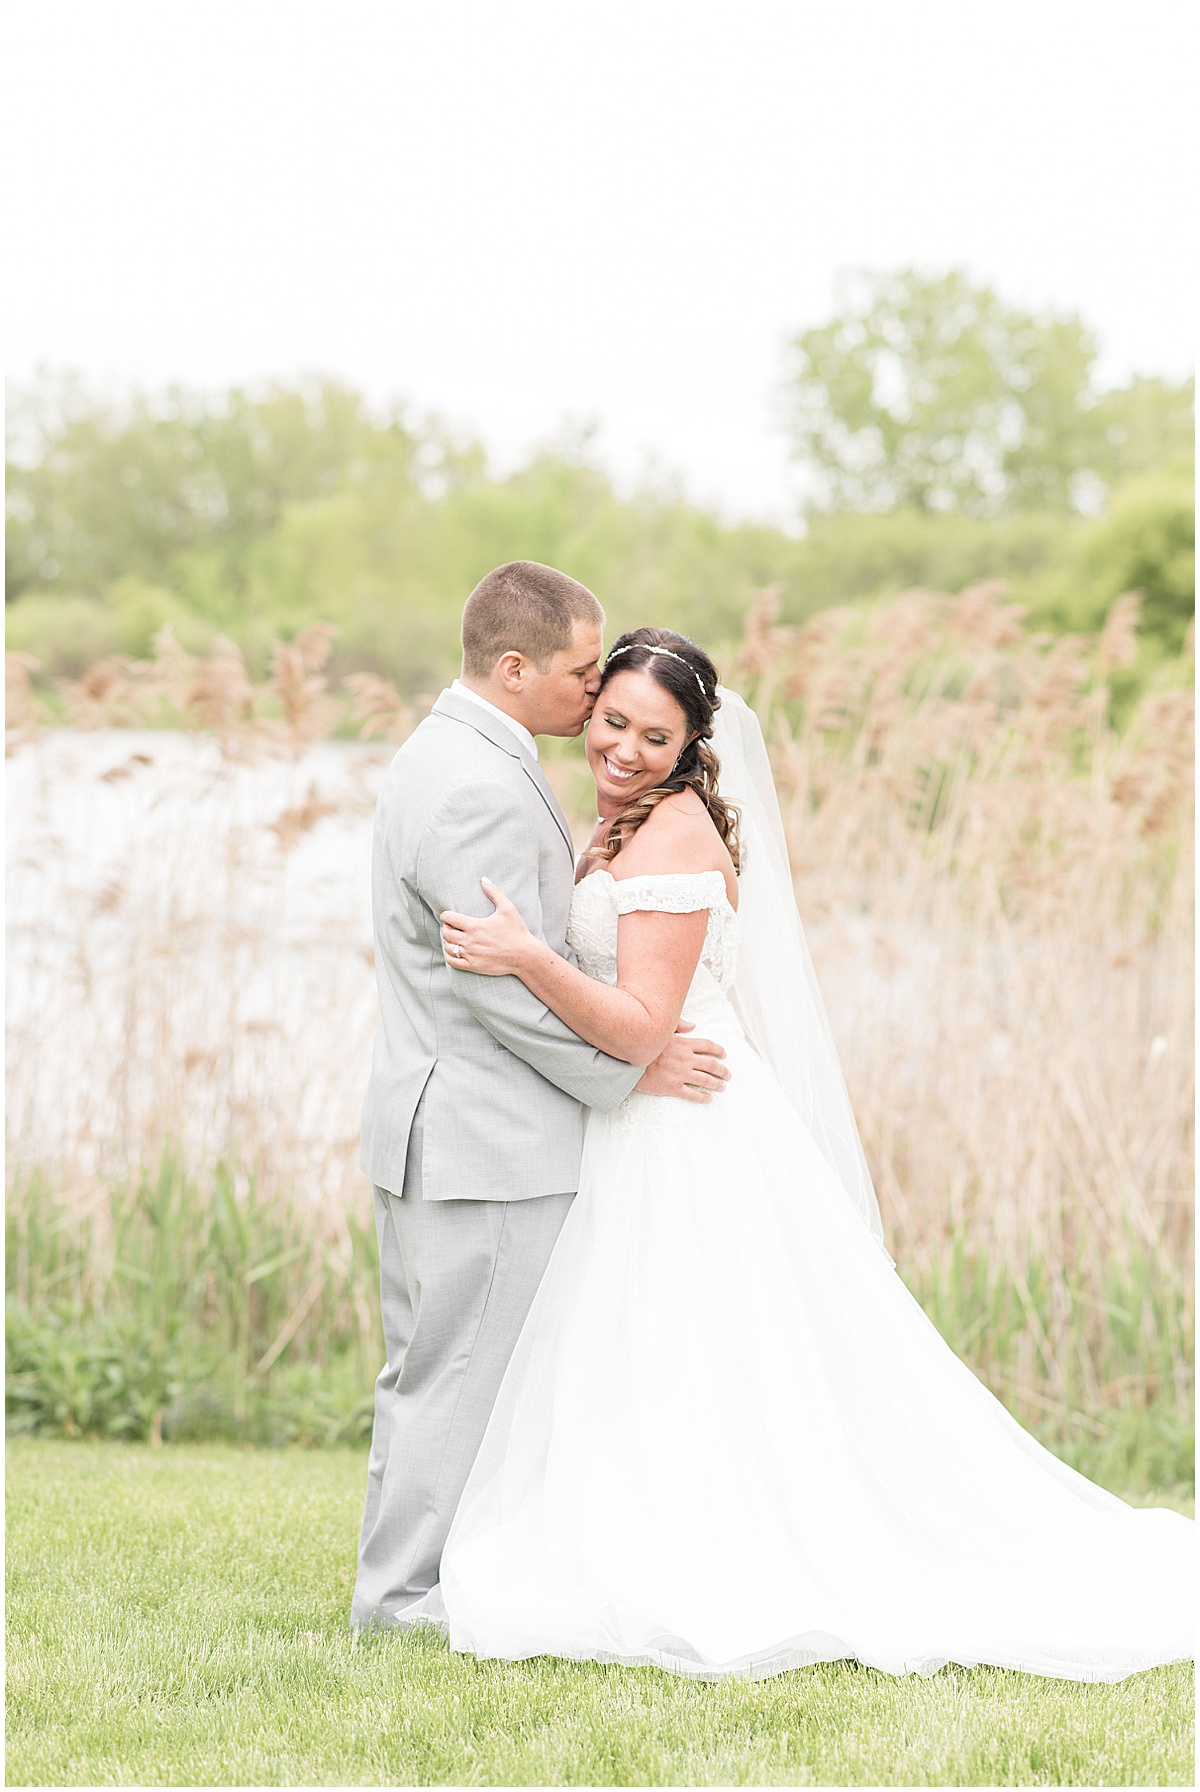 Wedding in Merrillville, Indiana photographed by Victoria Rayburn Photography